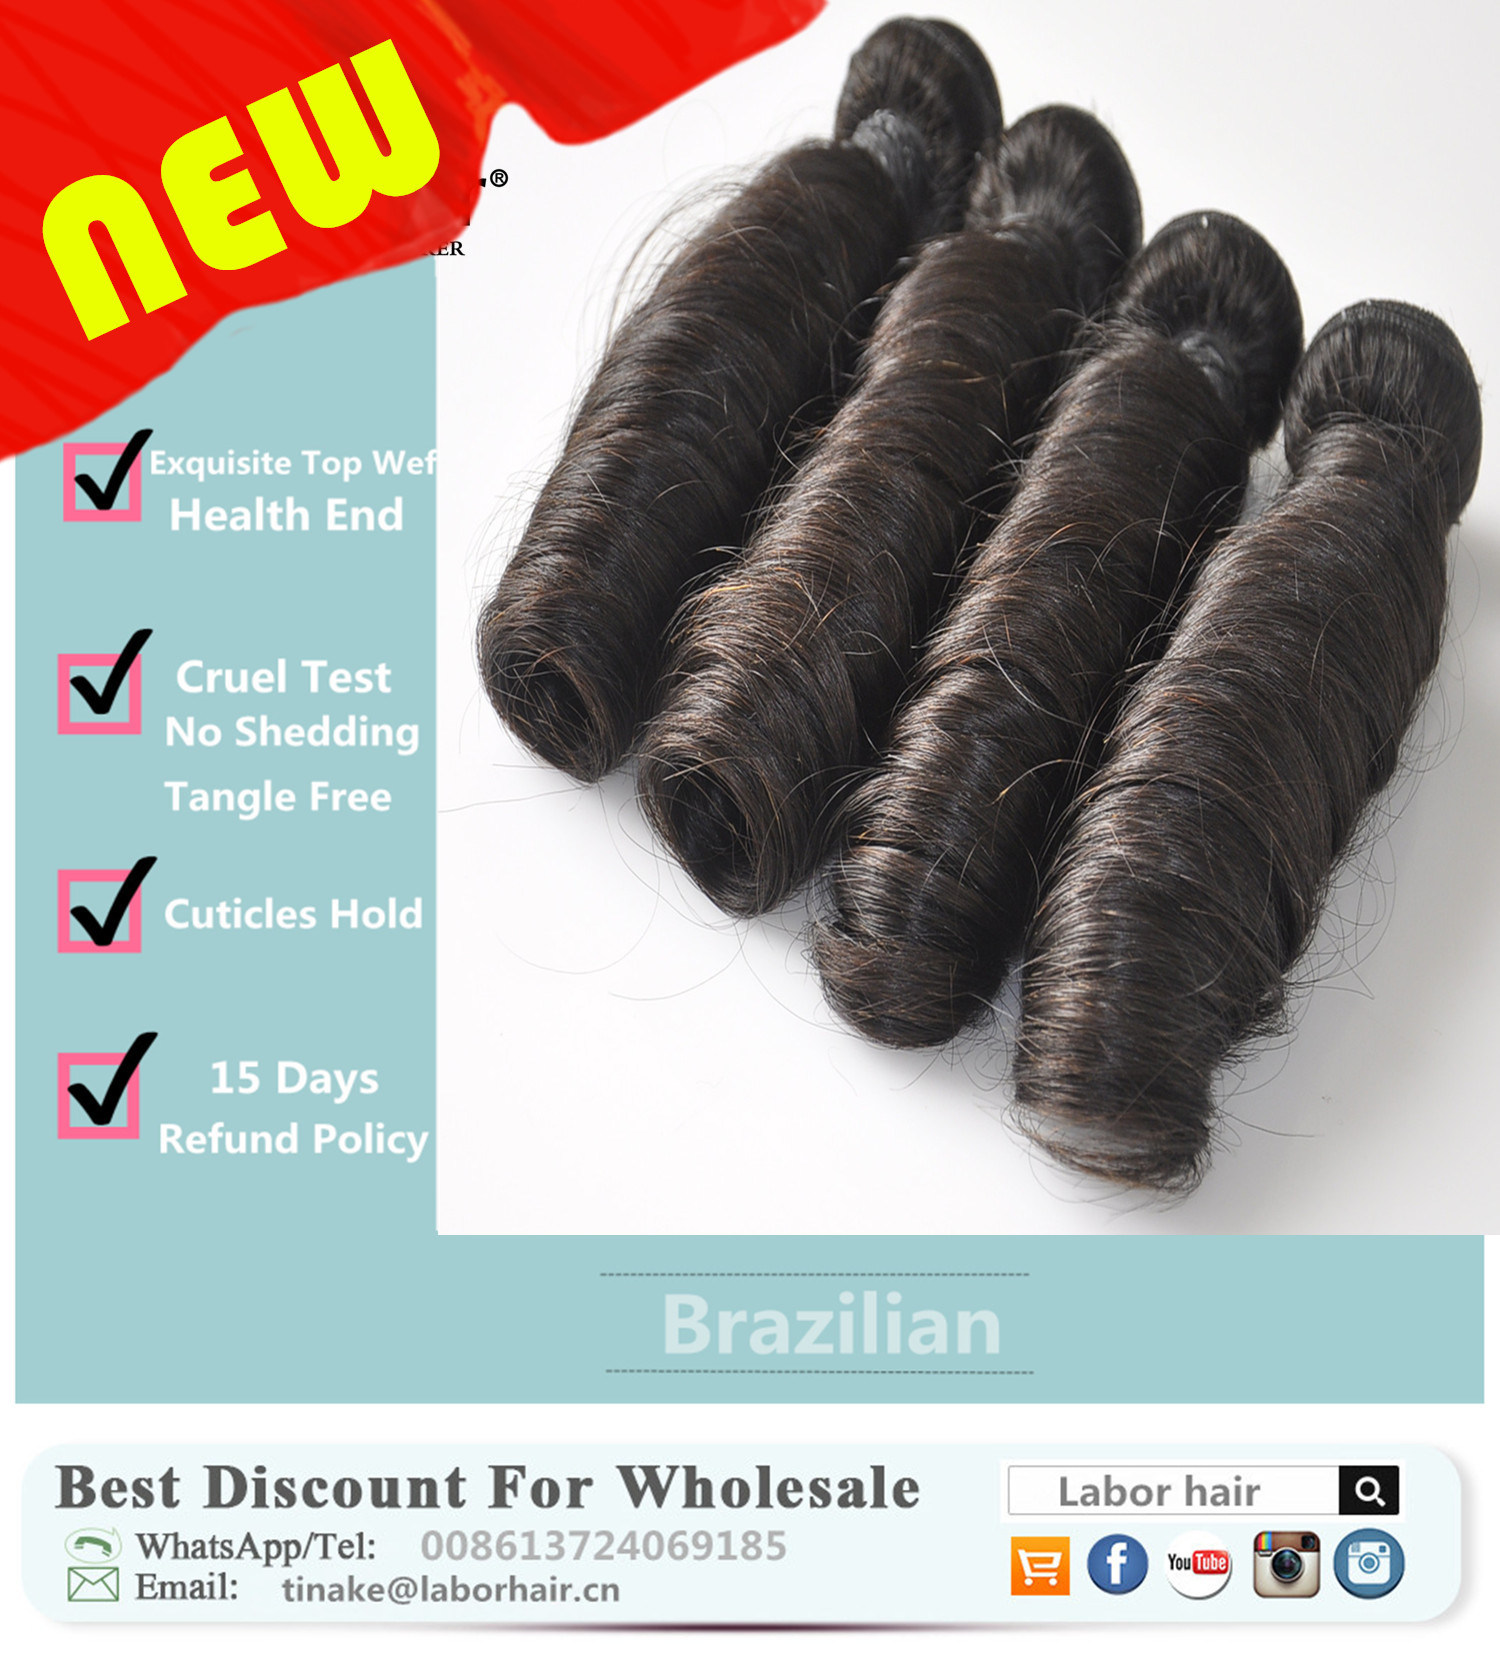 Unprocessed Labor Hair Extension 105g (+/-2g) /Bundle Natural Brazilian Virgin Hair Spring Curl 100% Human Hair Weaves Grade 9A